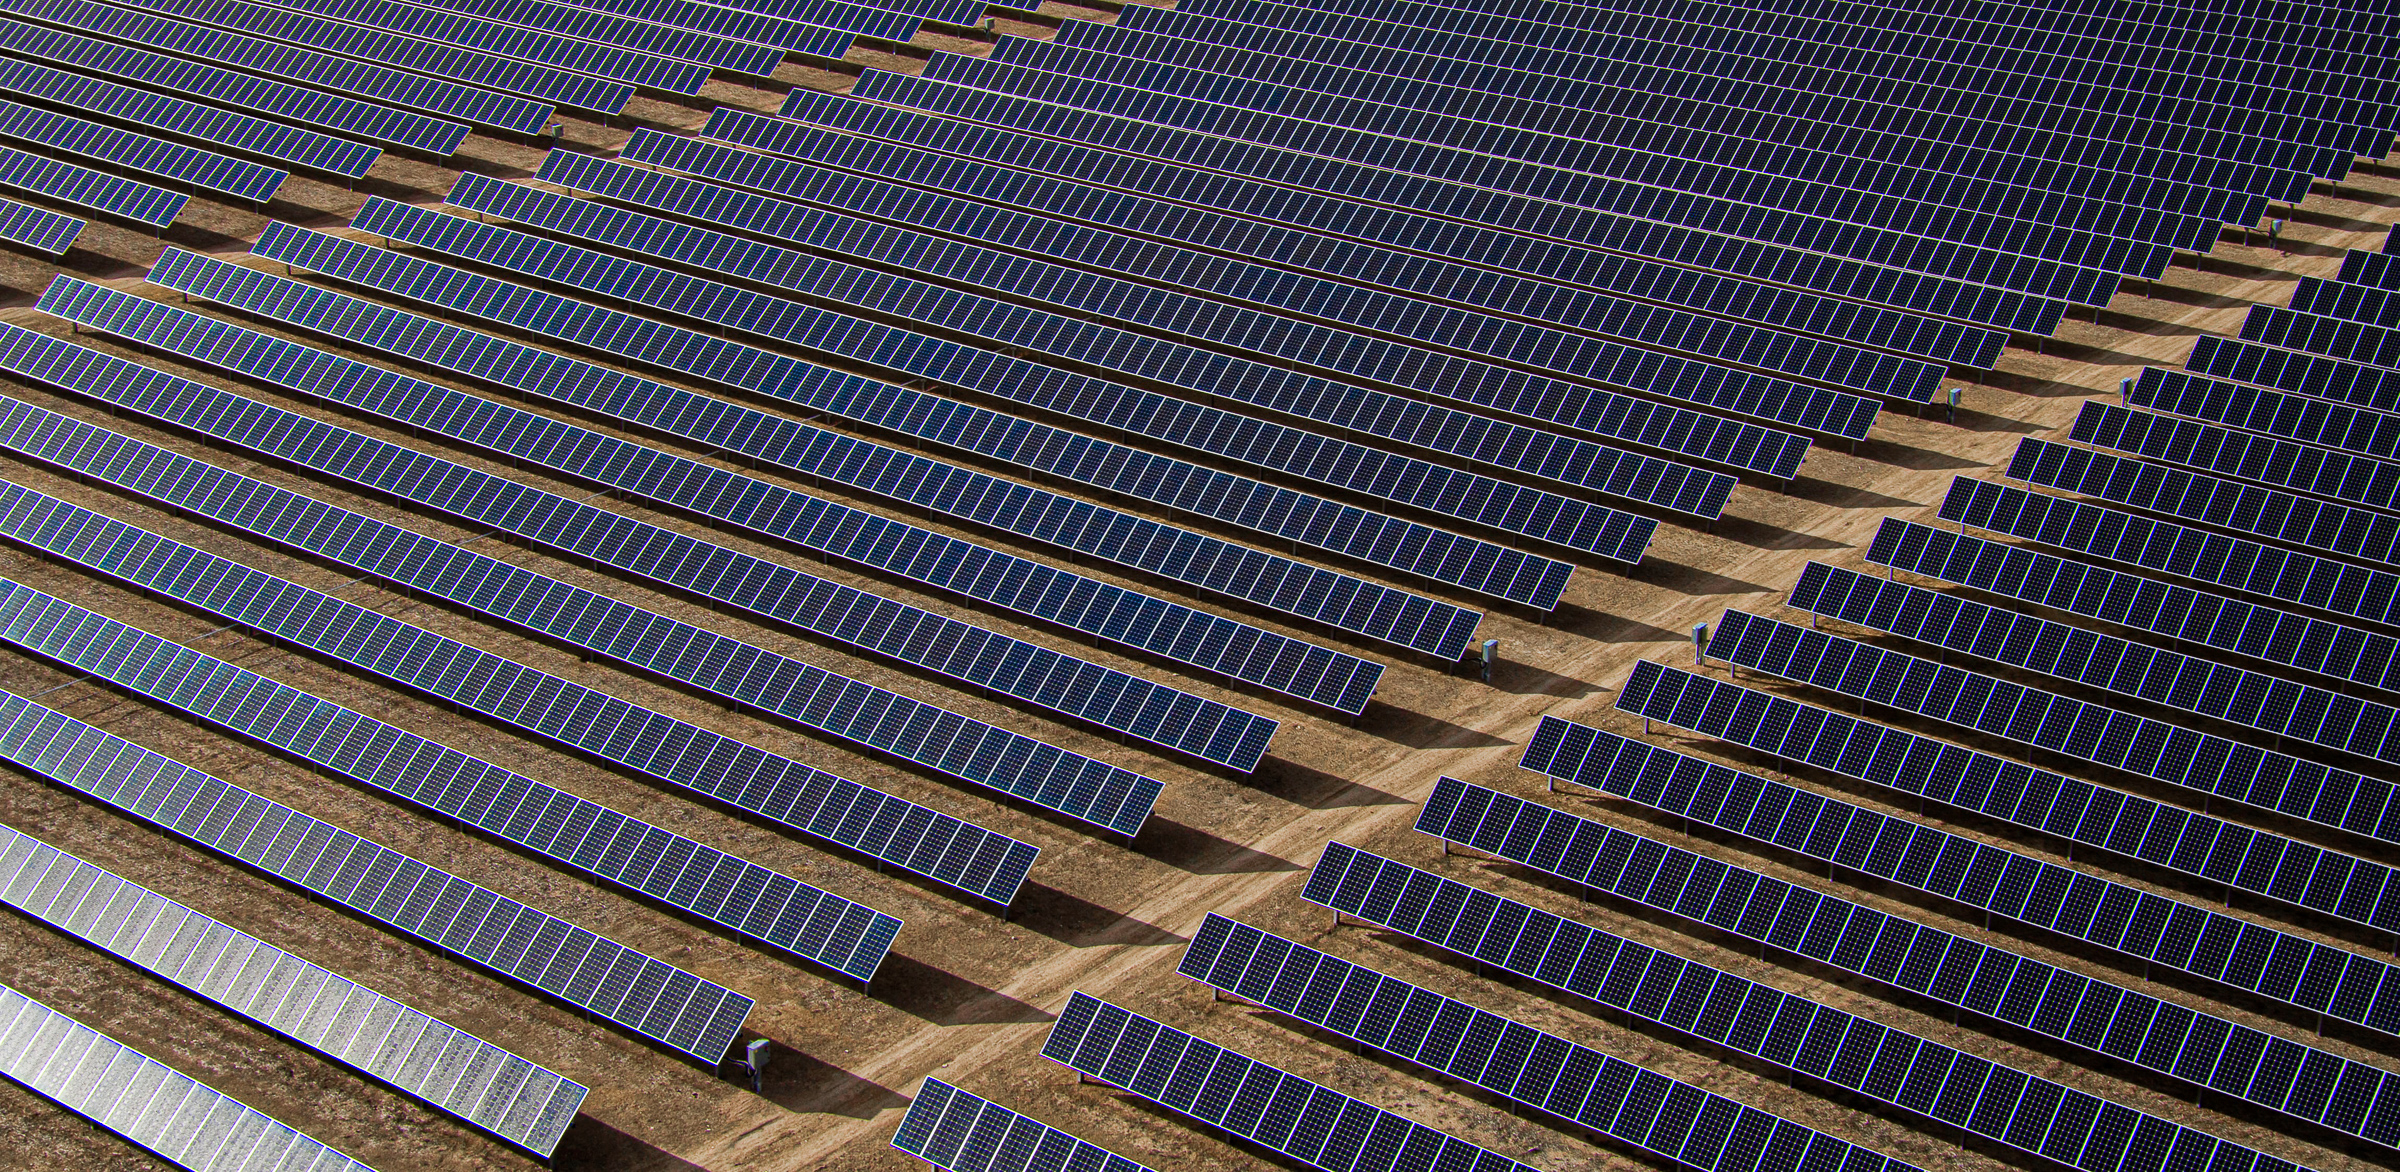 Drone aerial image of solar panels in a large solar field